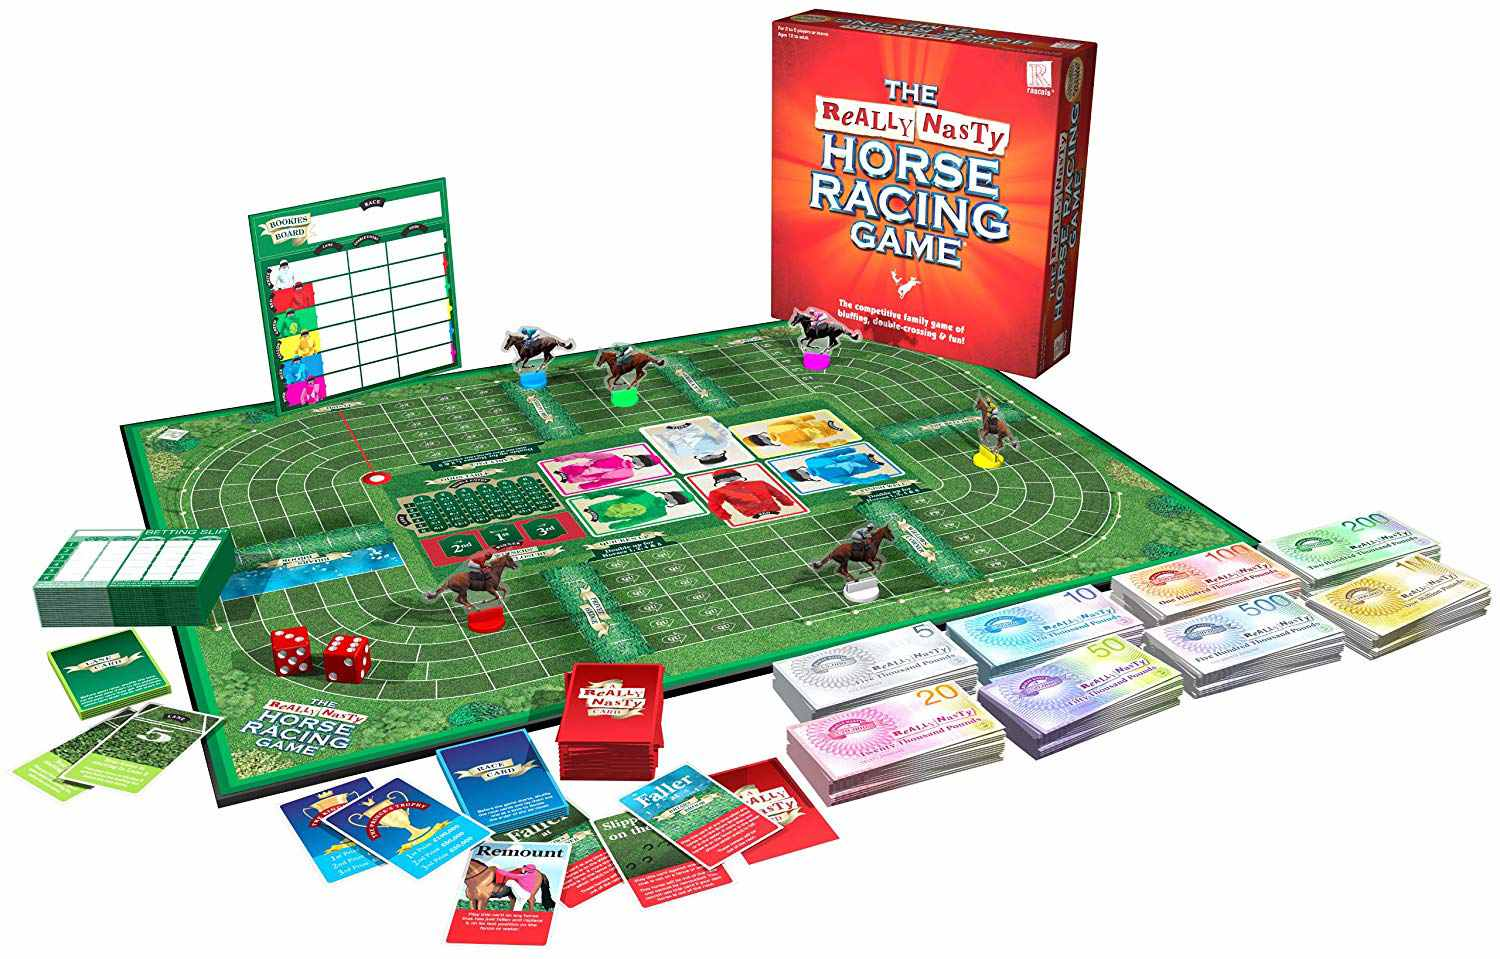 Betting board game football arbitrage betting example